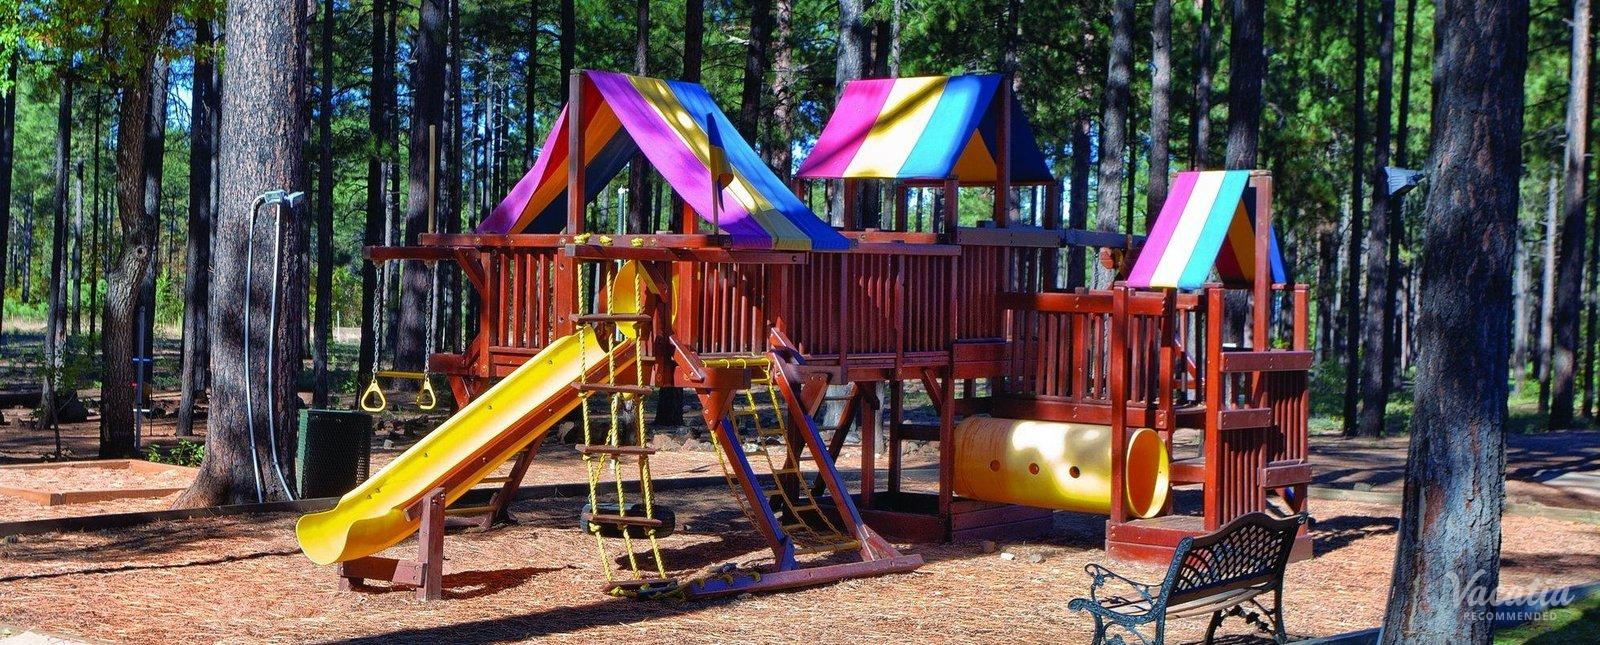 WorldMark Pinetop Arizona Playground